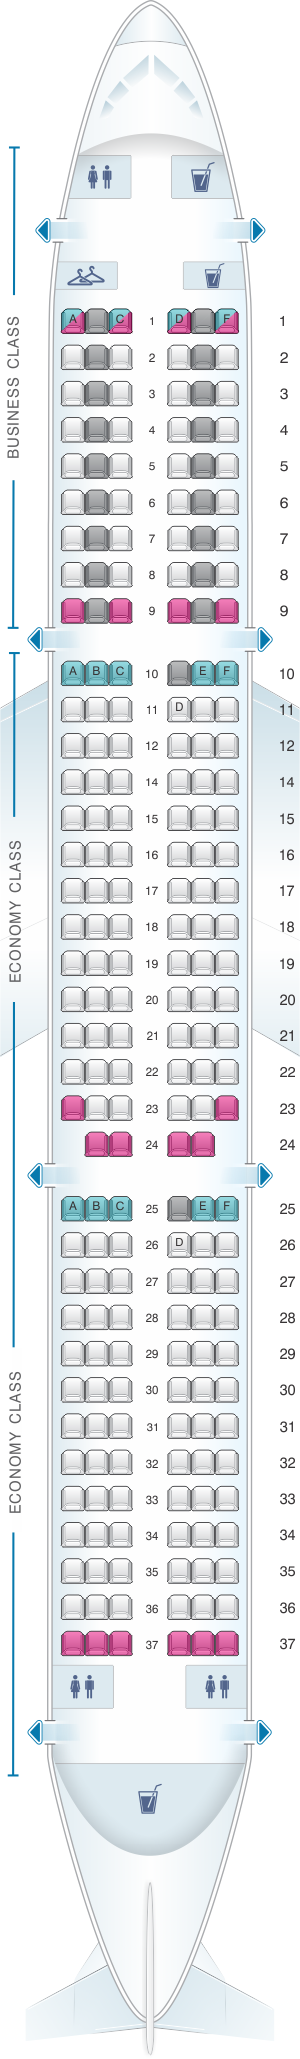 Seat map for Air France Airbus A321 Europe V2